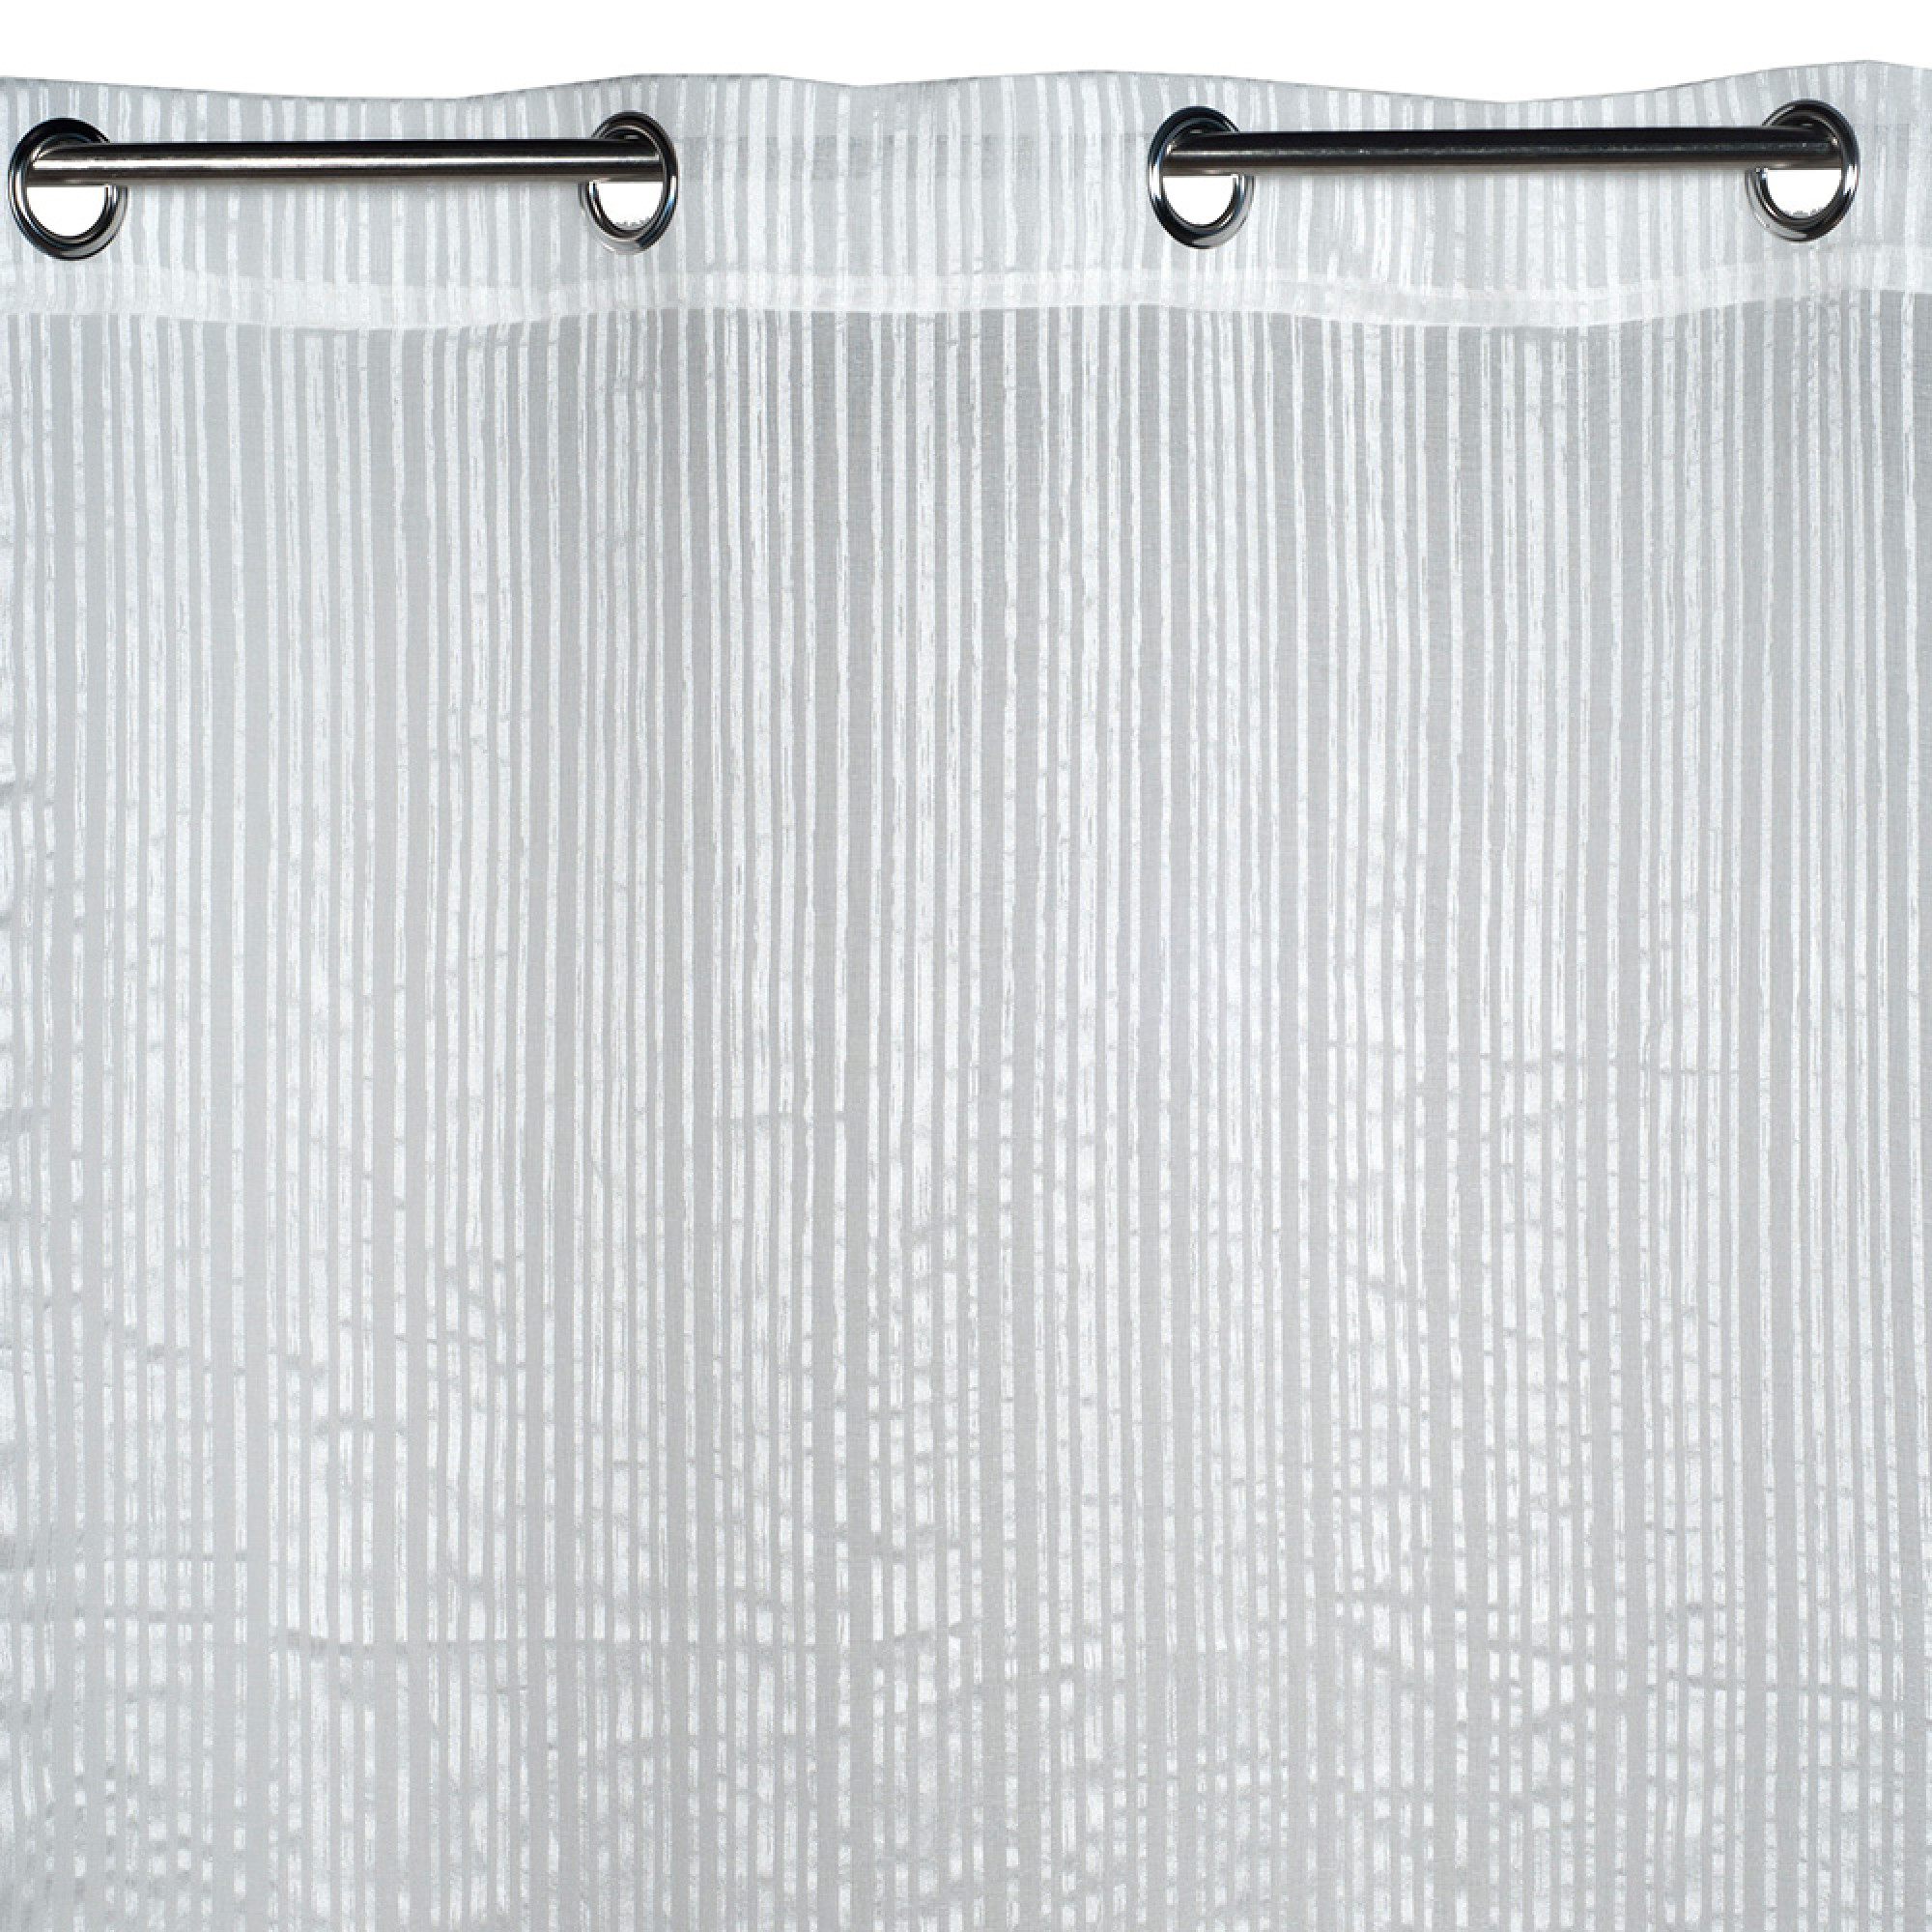 Sheer Curtain With Grommets Corfou